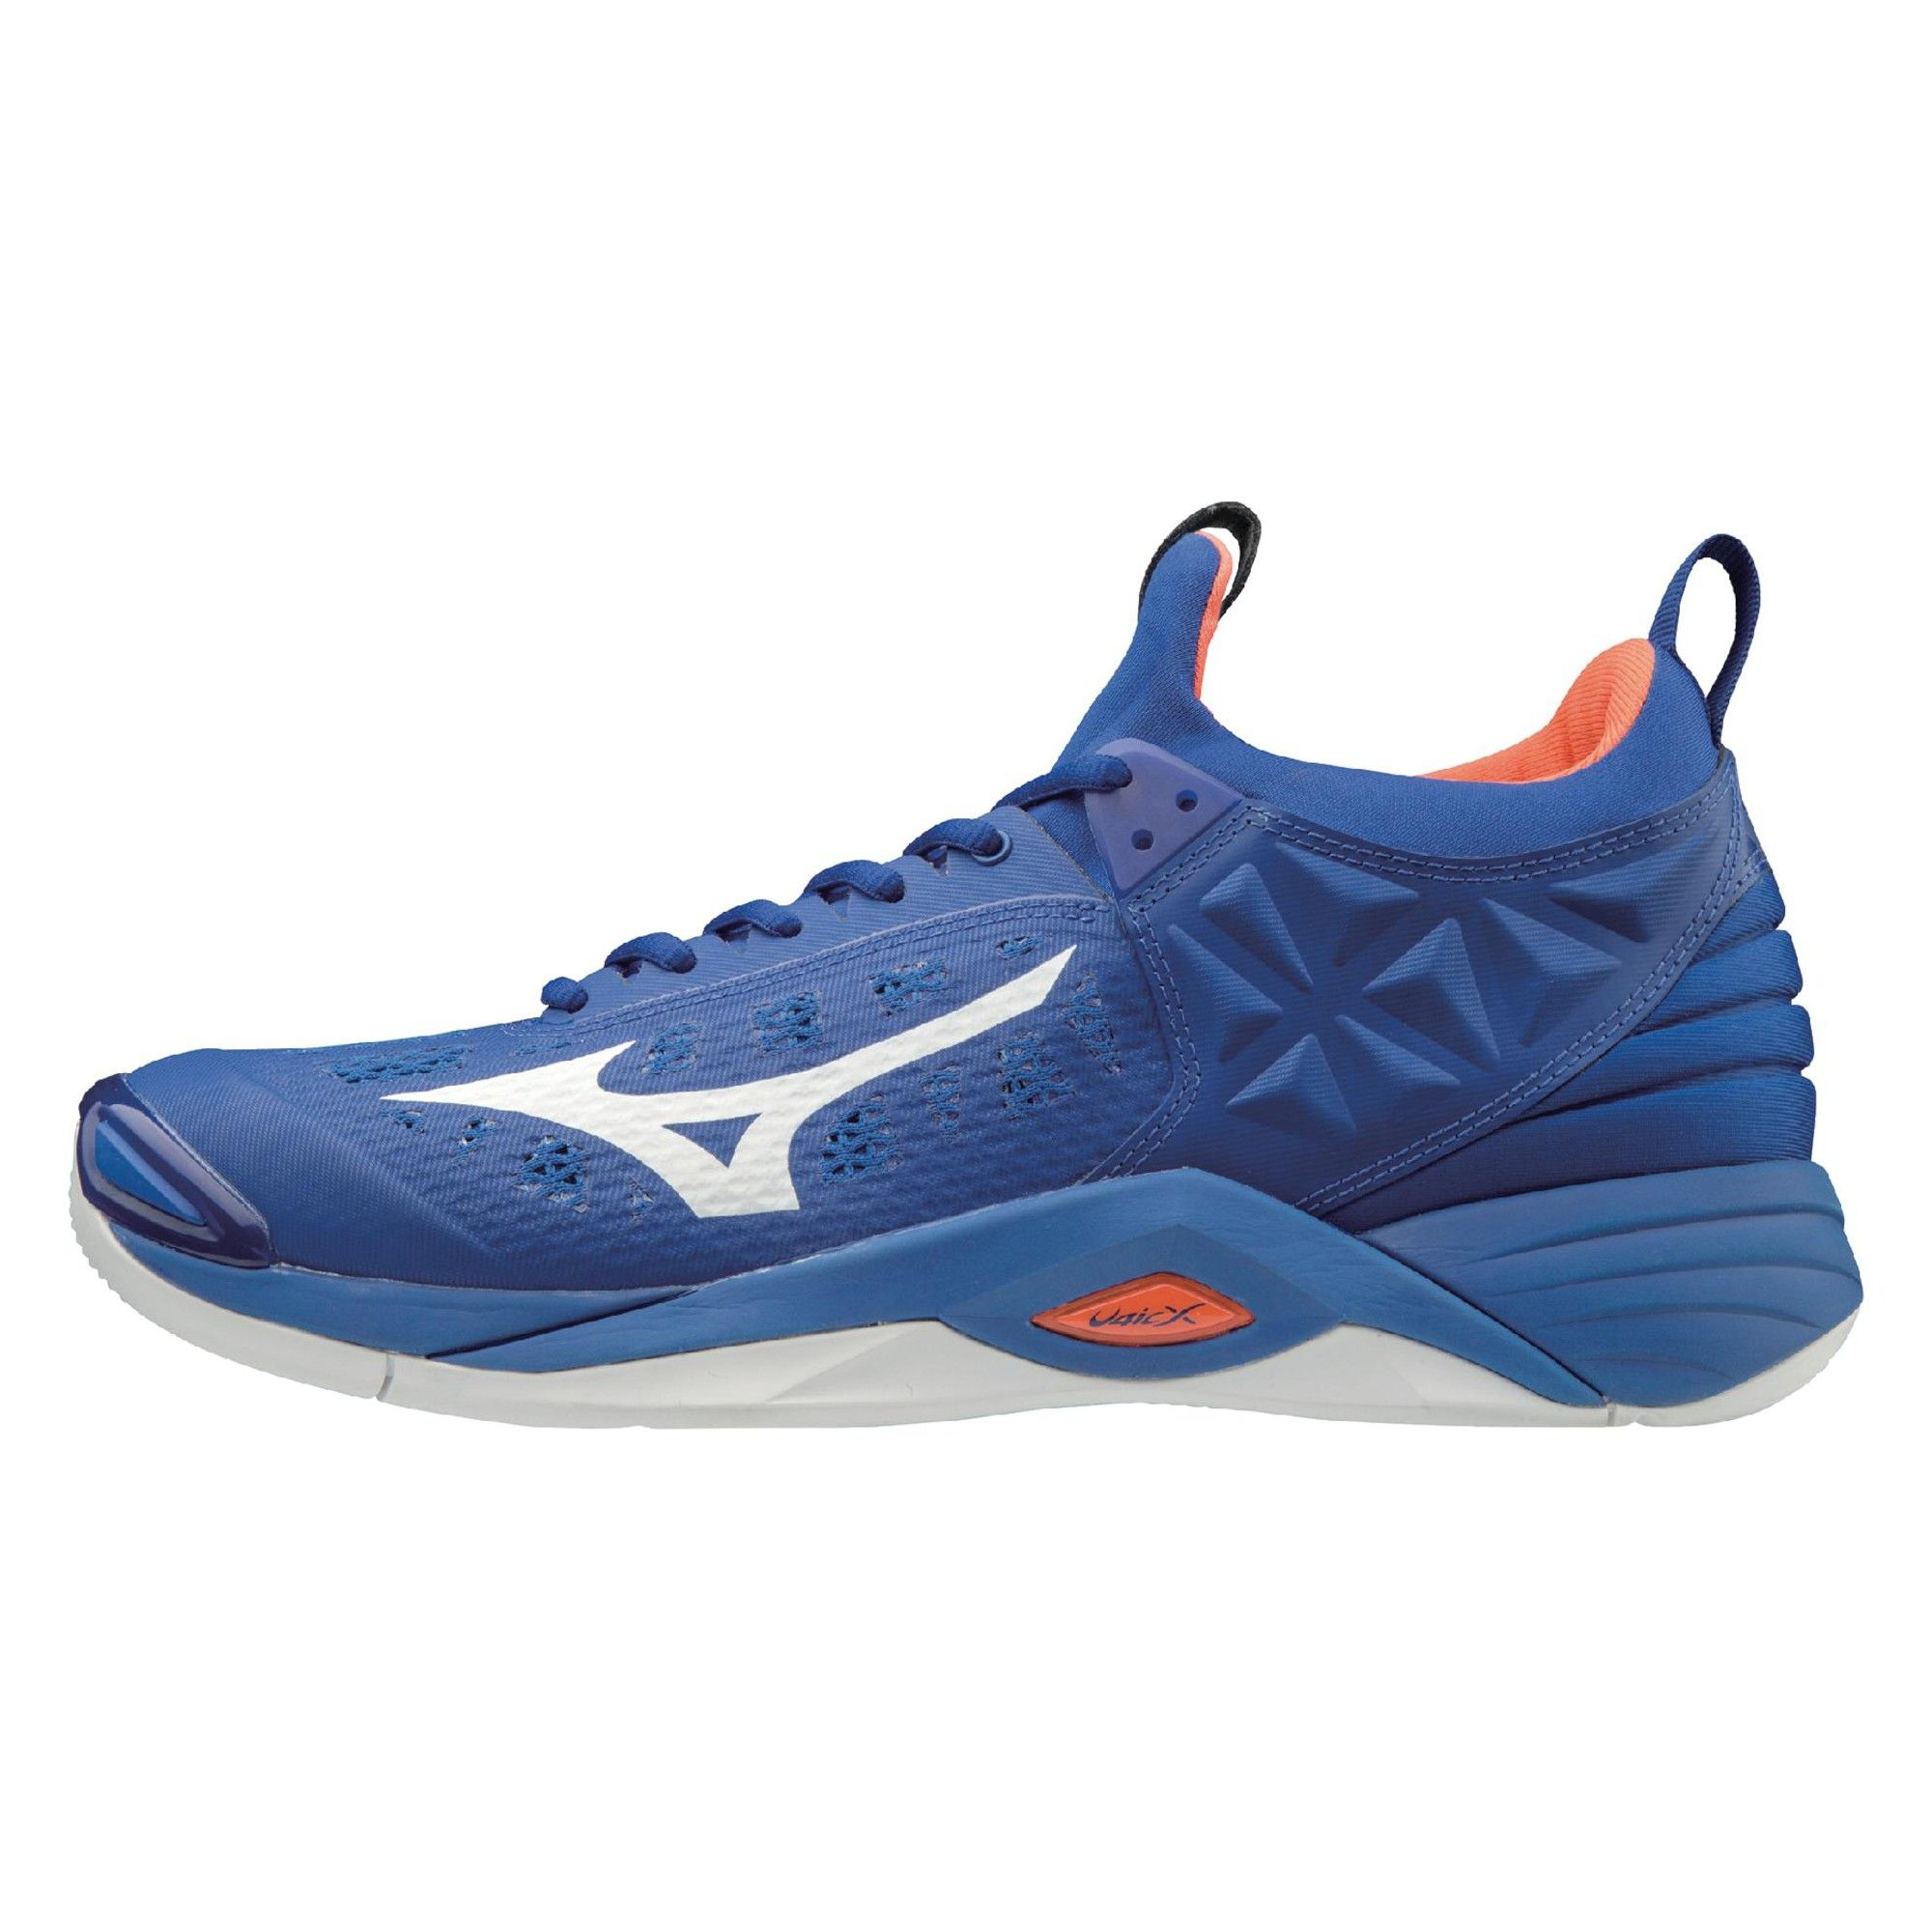 Mizuno Wave Momentum Men S Volleyball Shoes Mens Size 9 In Color Royal Orange 5220 Volleyball Shoes Mens Volleyball Shoes Shoes Mens